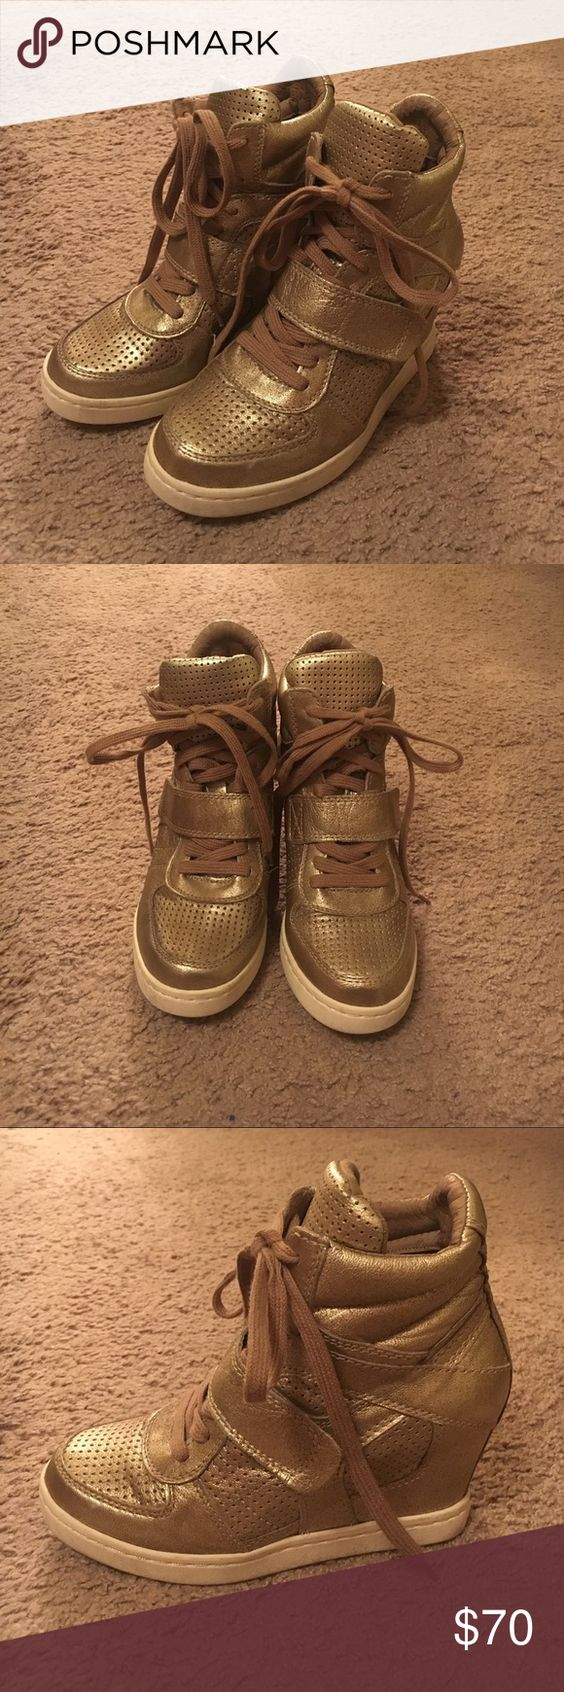 Ash Bowie wedge sneakers, metallic gold Used, good condition Ash Shoes Wedges